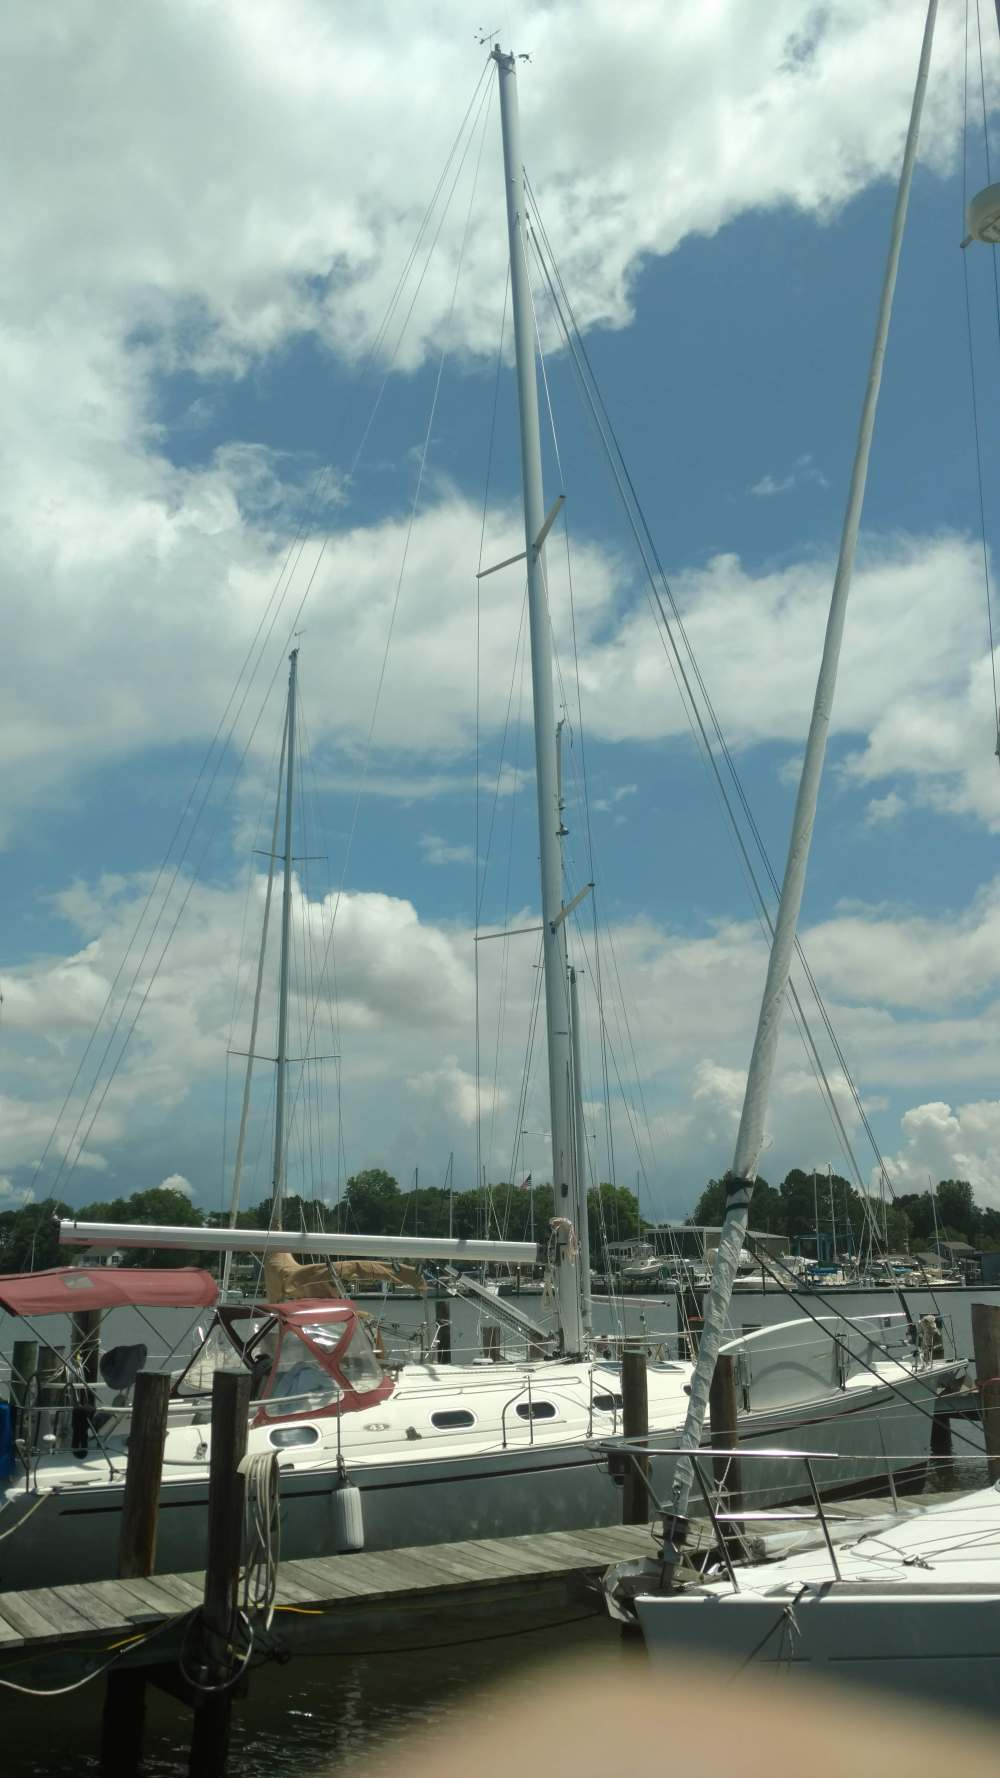 Dufour 43 Gibb Sea. Cutts and Case. Oxford, MD. The Rigging Company.